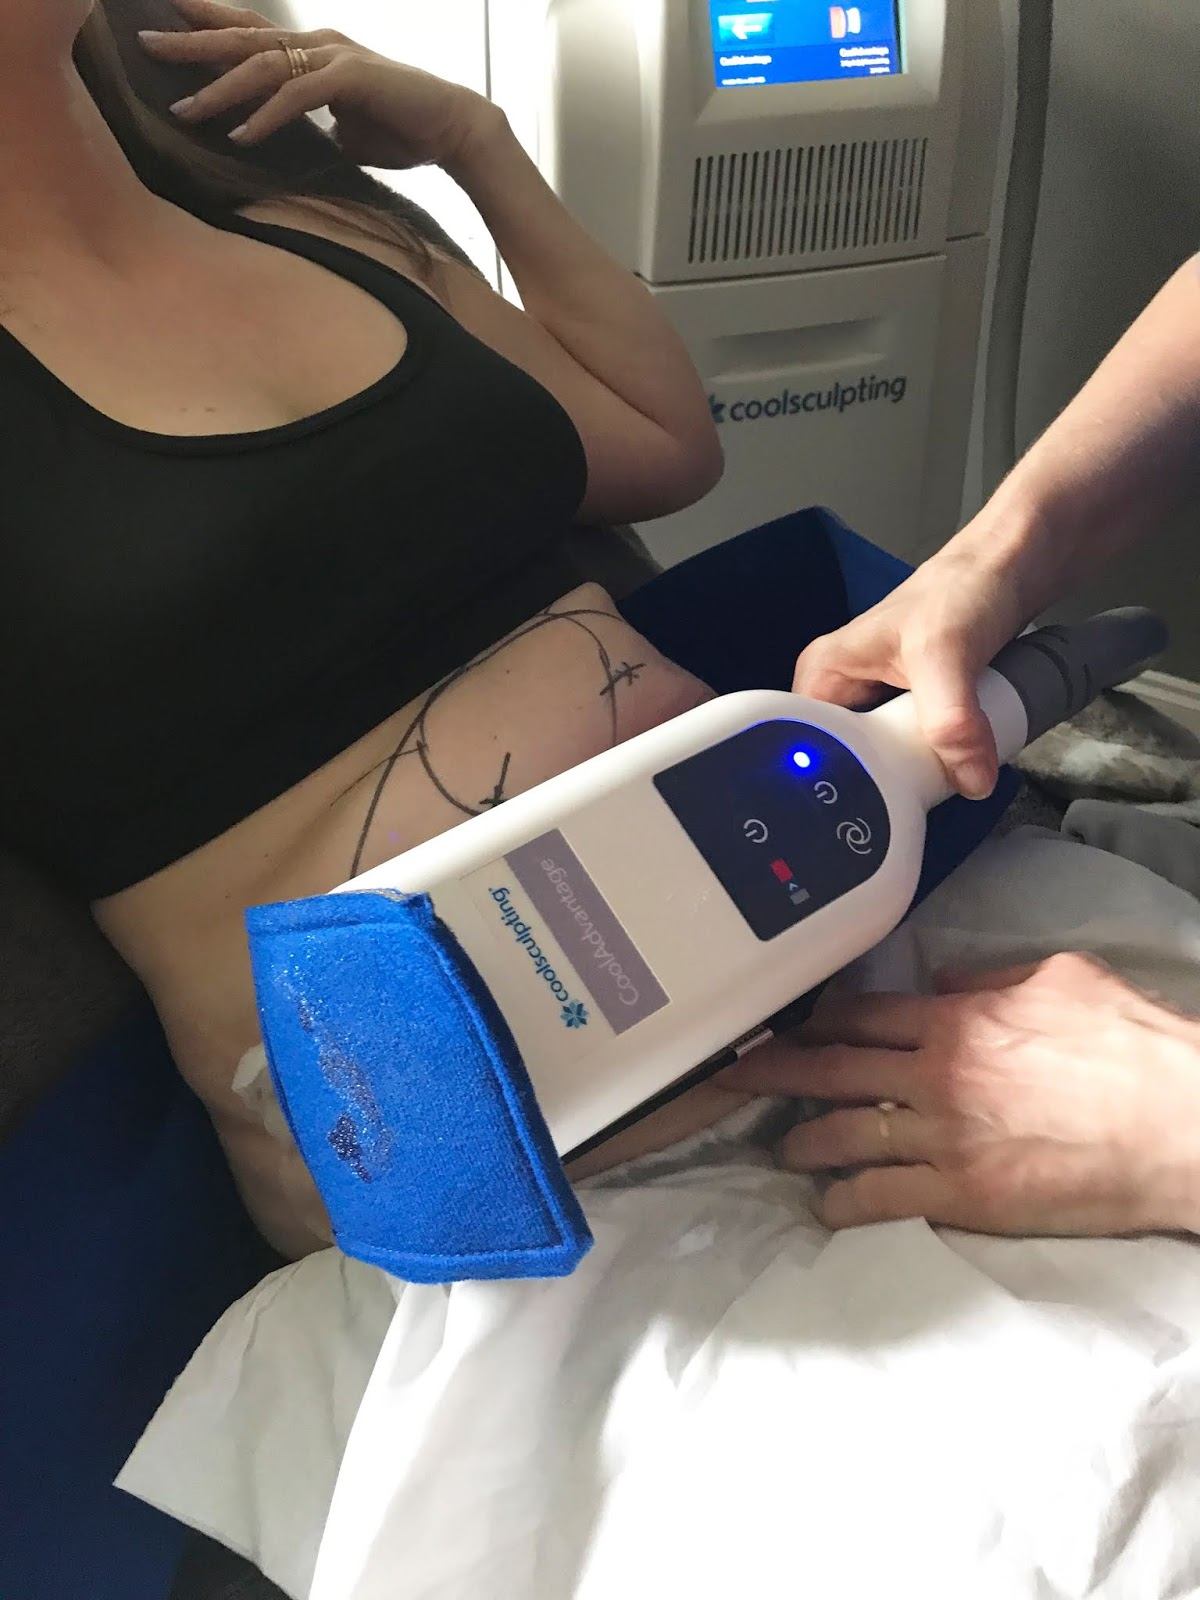 Coolsculpting \ Hampton Clinic \ Solihill \ West Midlands \ fat freezing \ cryolipolysis \ Priceless Life of Mine \ over 40 lifestyle blog